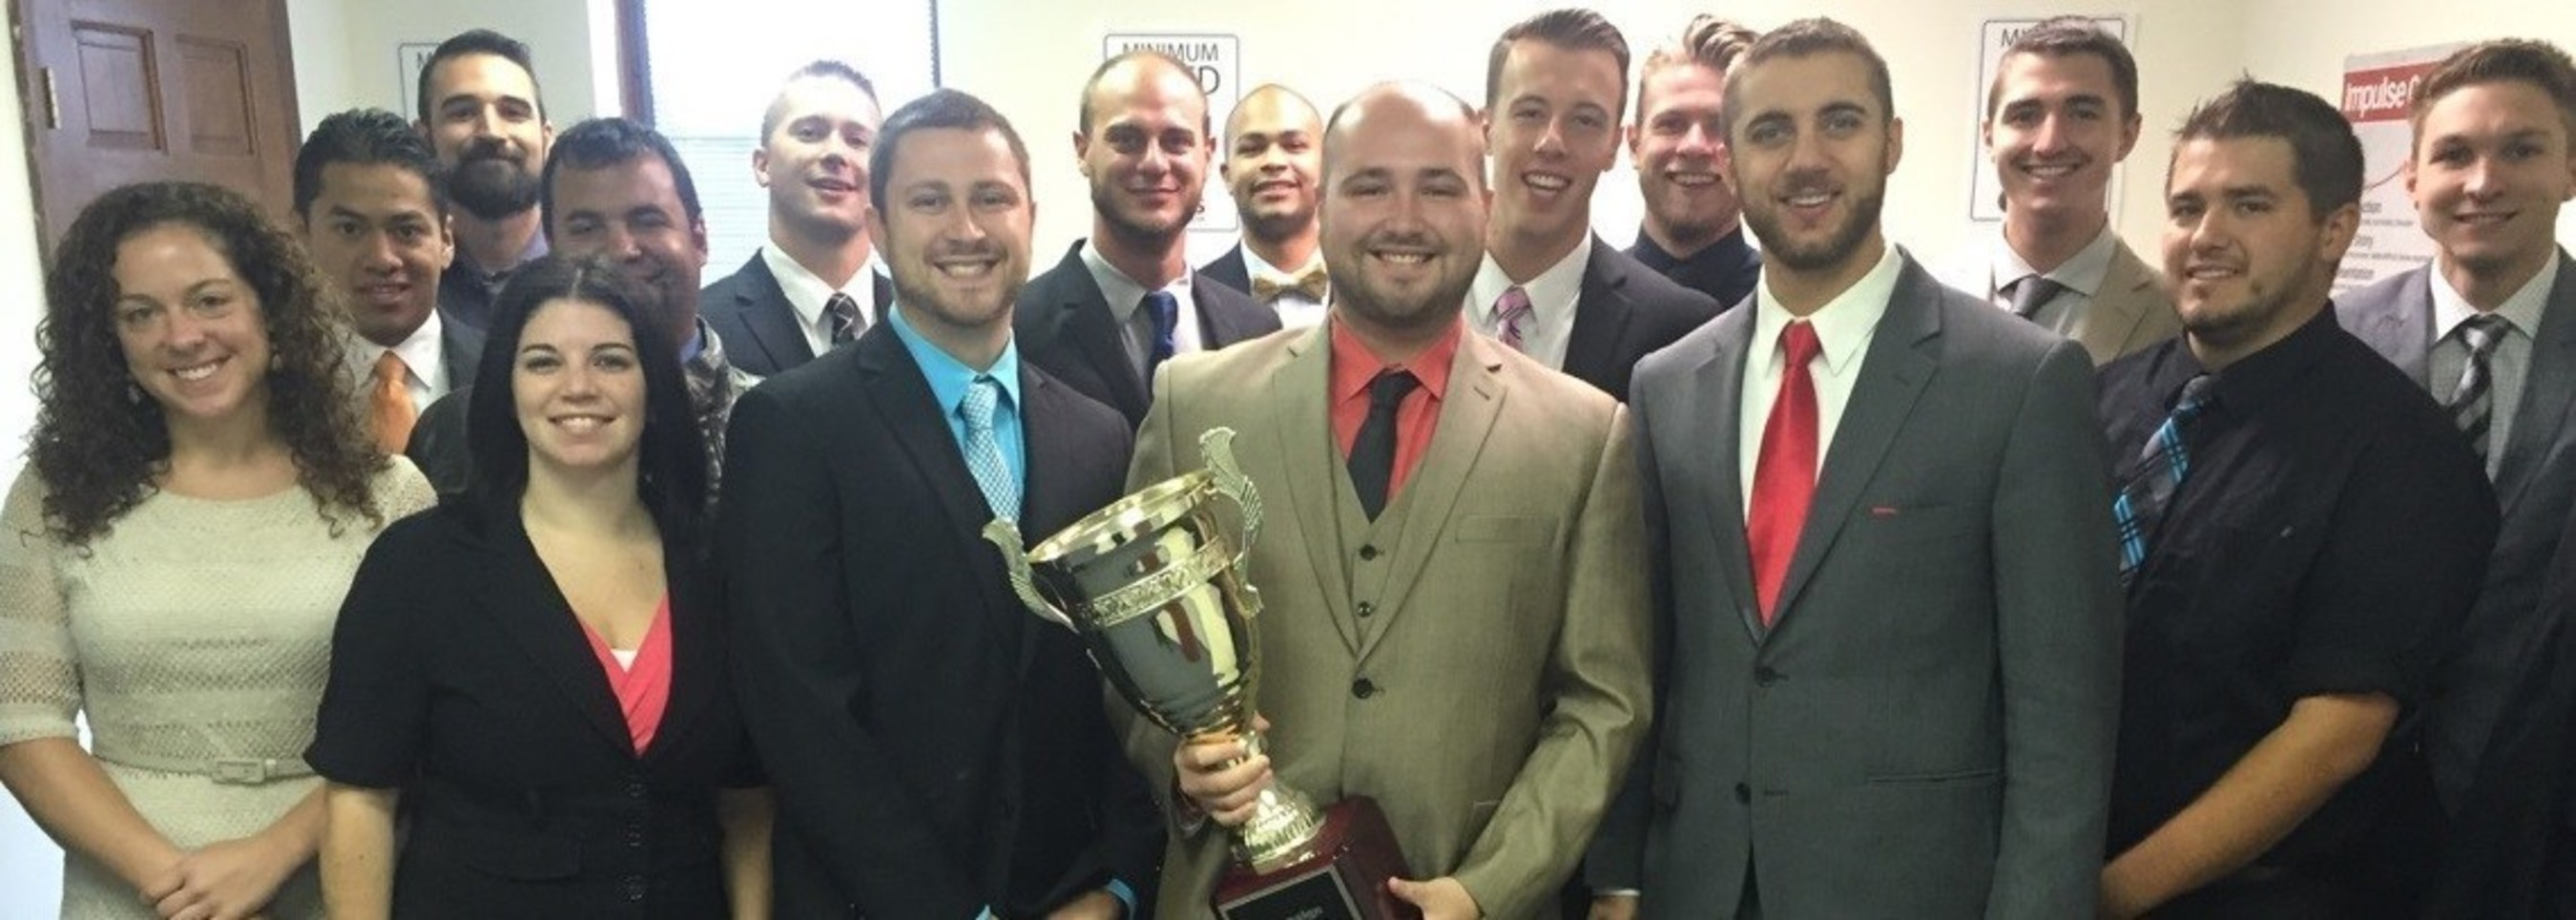 Back-to-Back Campaign Cup wins for Executive Consultant Group